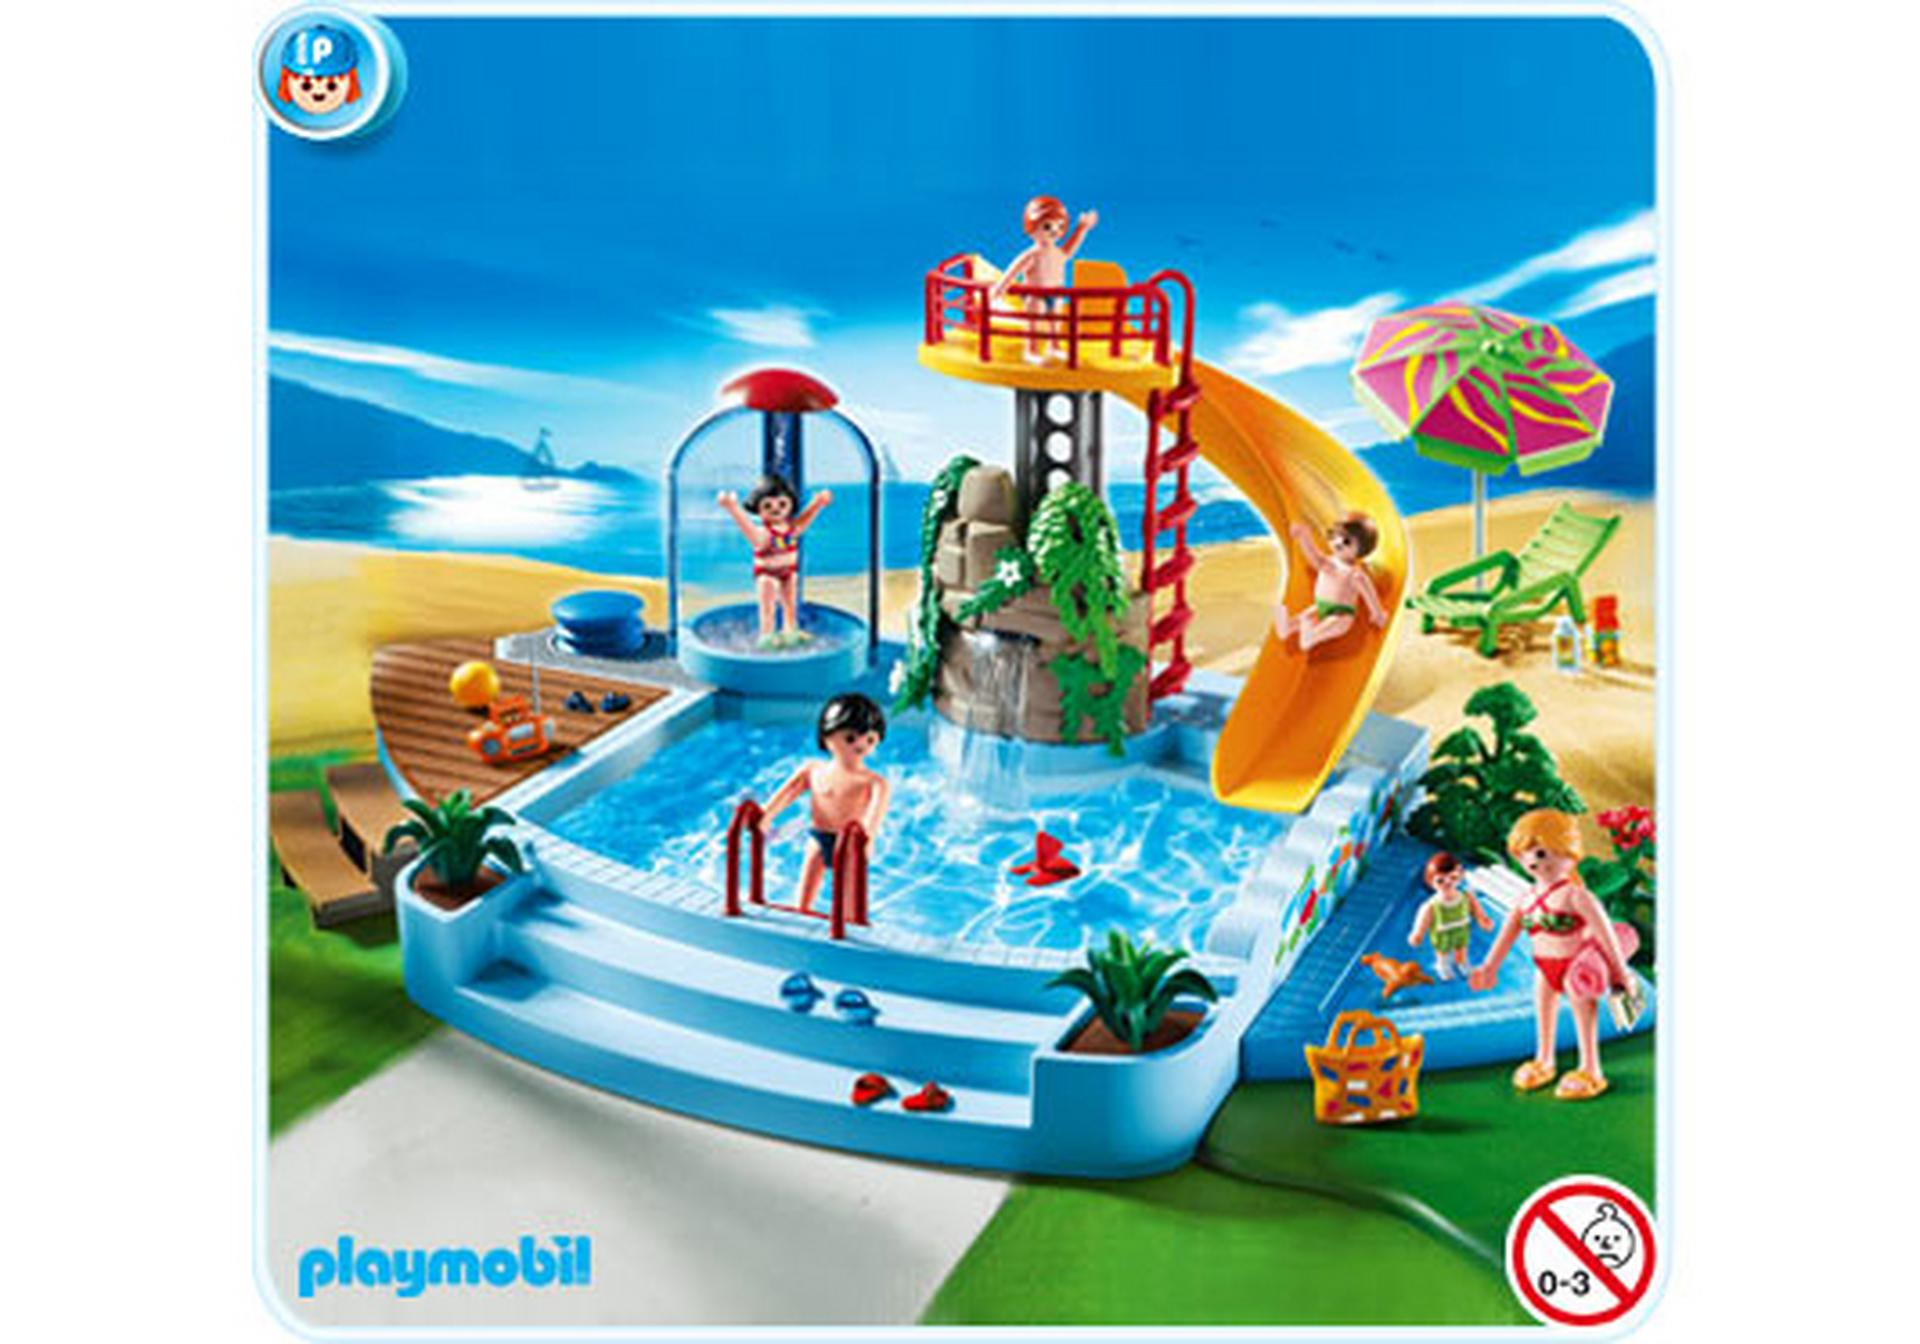 Playmobil Schwimmbad Anleitung